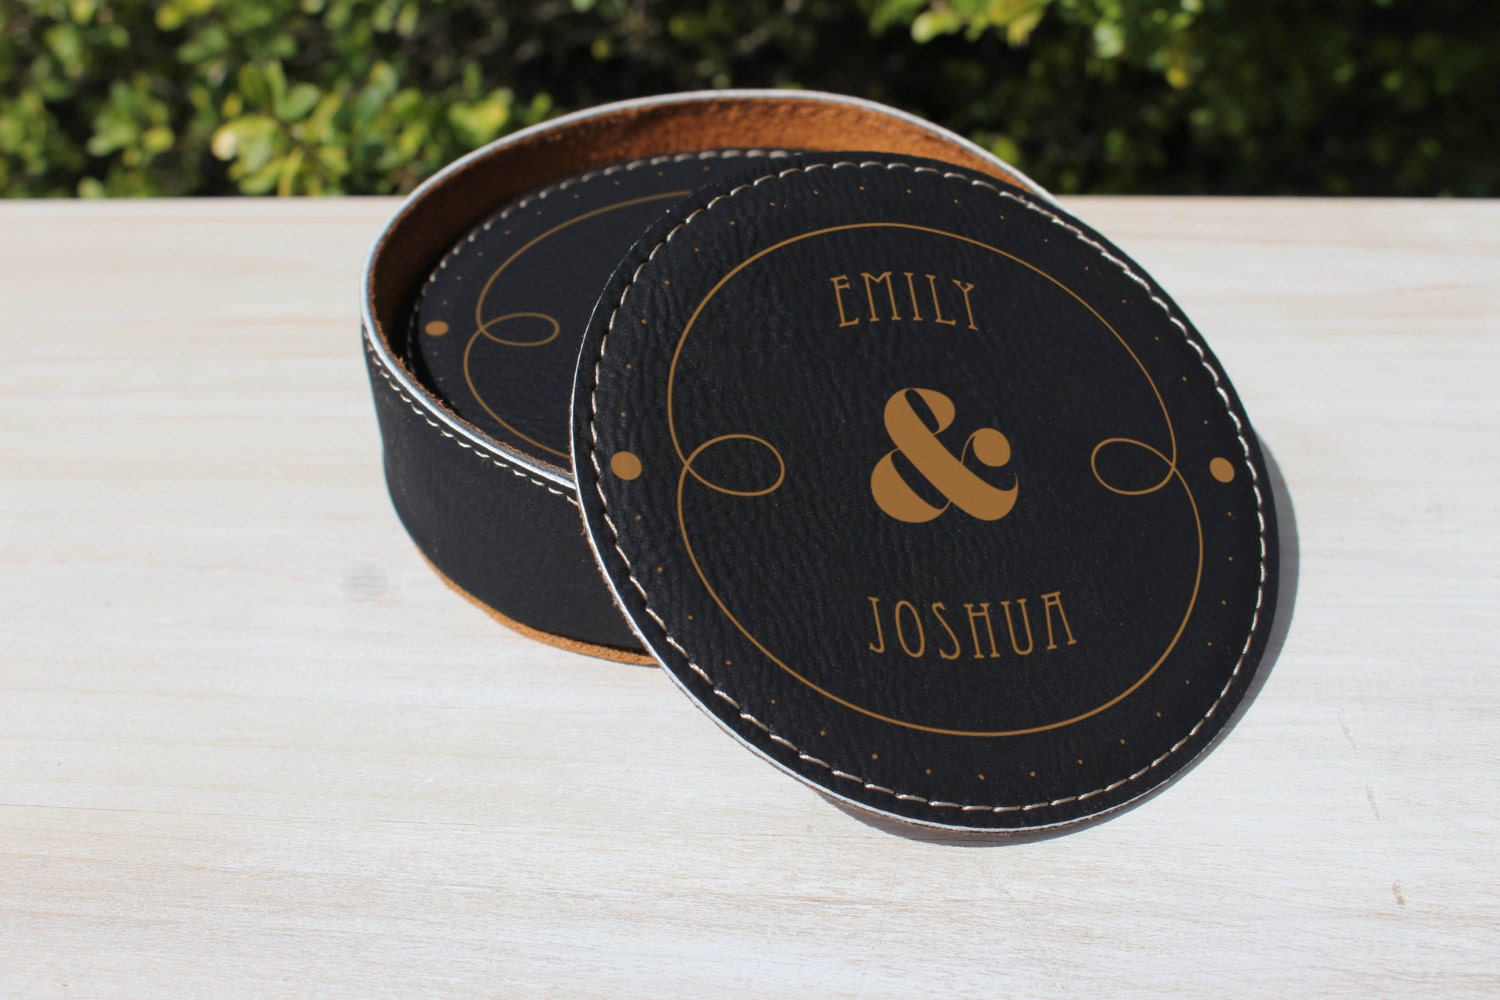 Leather Coaster Set Personalized Coasters By Glowcaketoppers